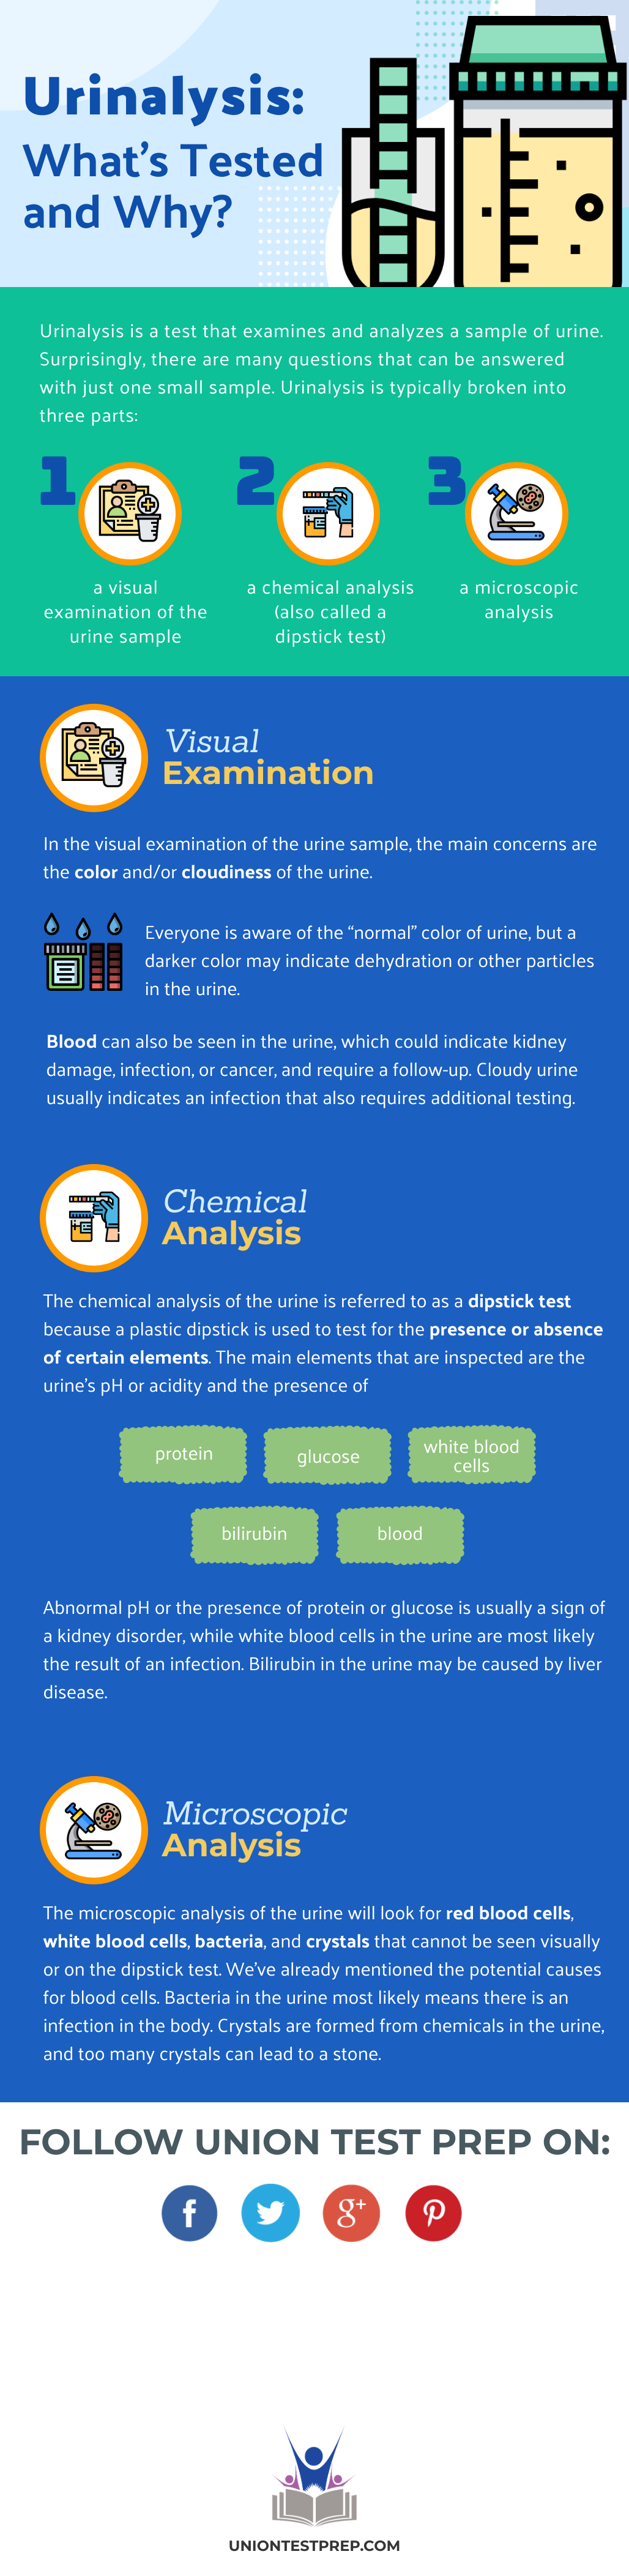 urinalysis whats tested